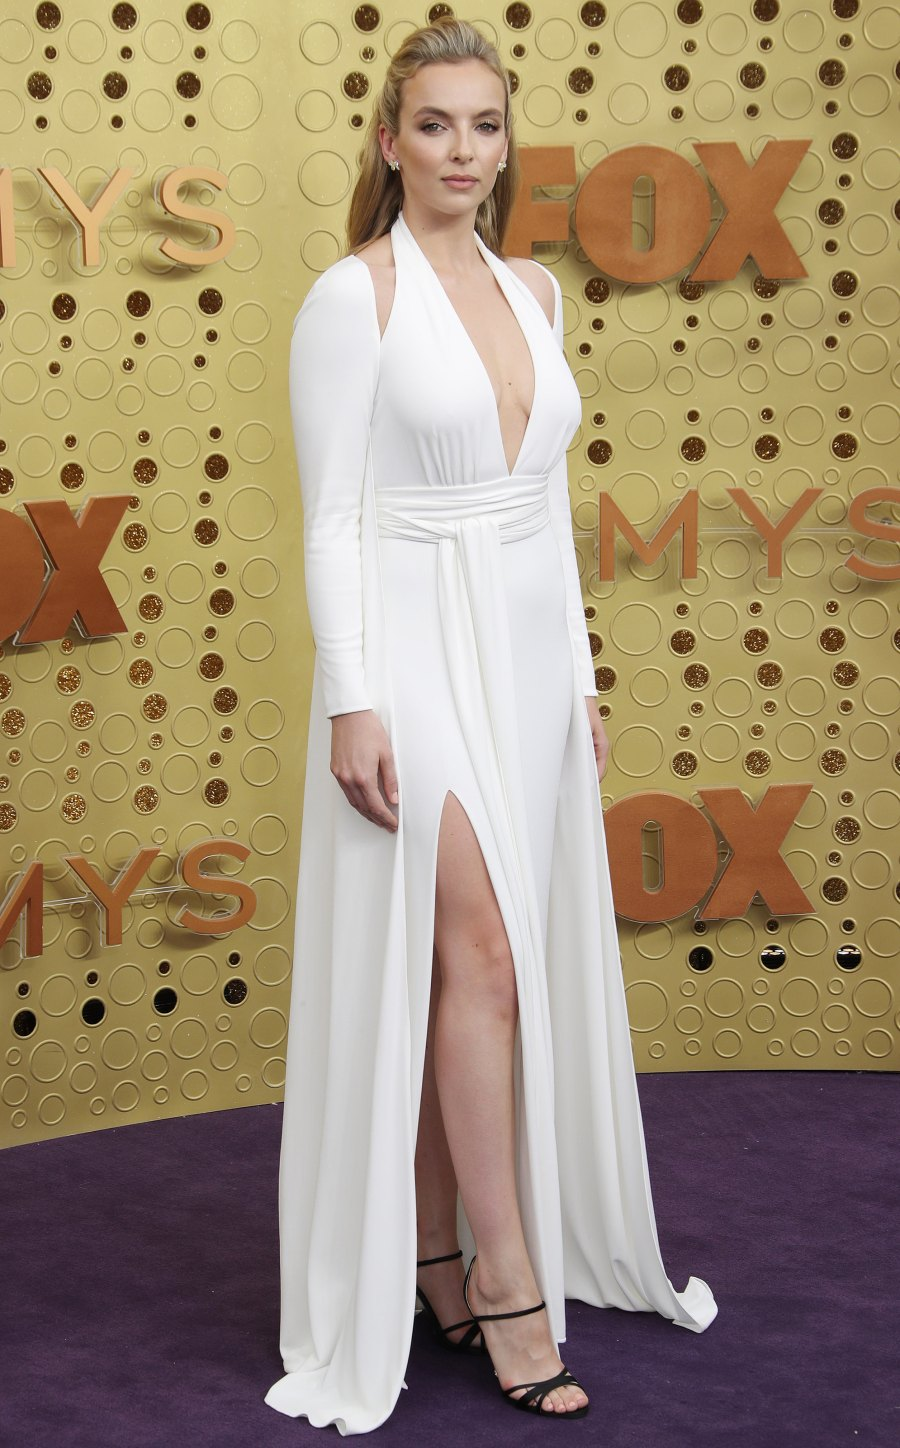 Emmys 2019 Nearly Naked - Jodie Comer